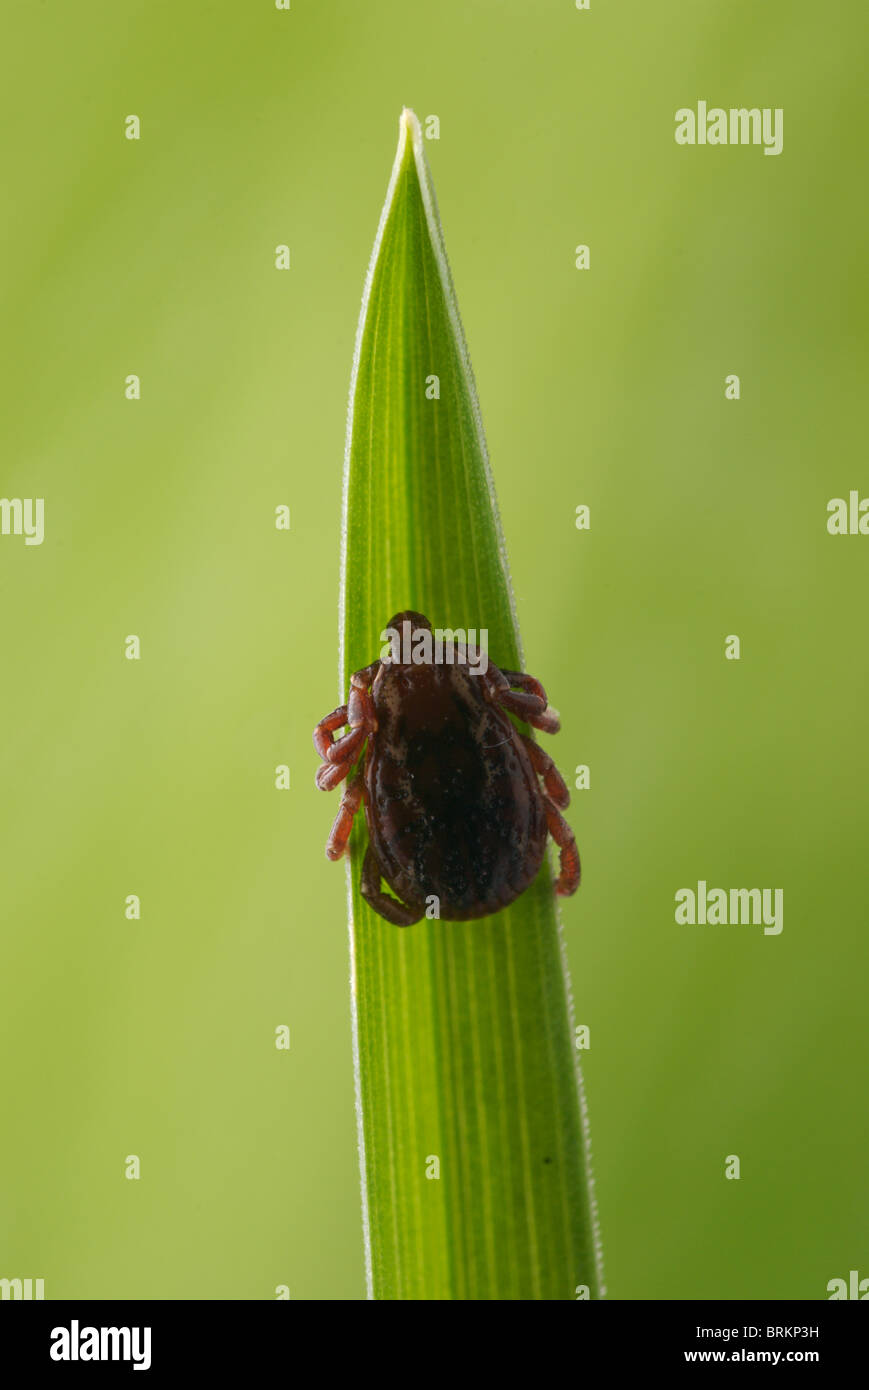 American dog tick, Dermacentor variablis, clings to a blade of grass. - Stock Image